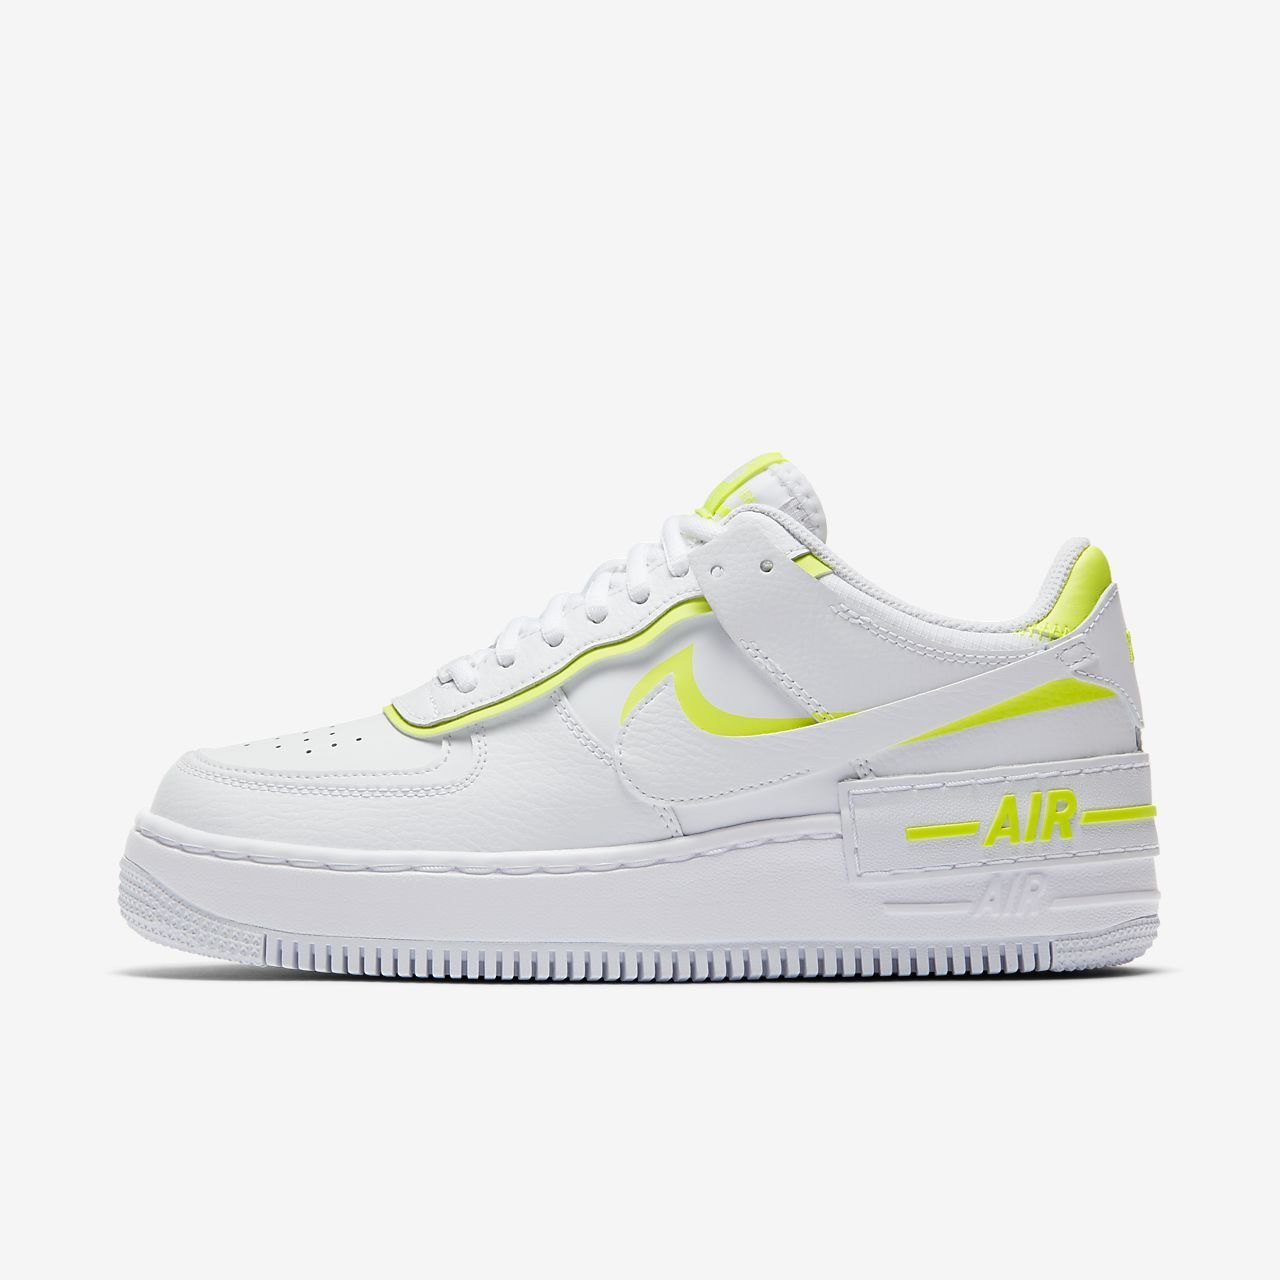 Air Force 1 Shadow Women's Shoe i 2020